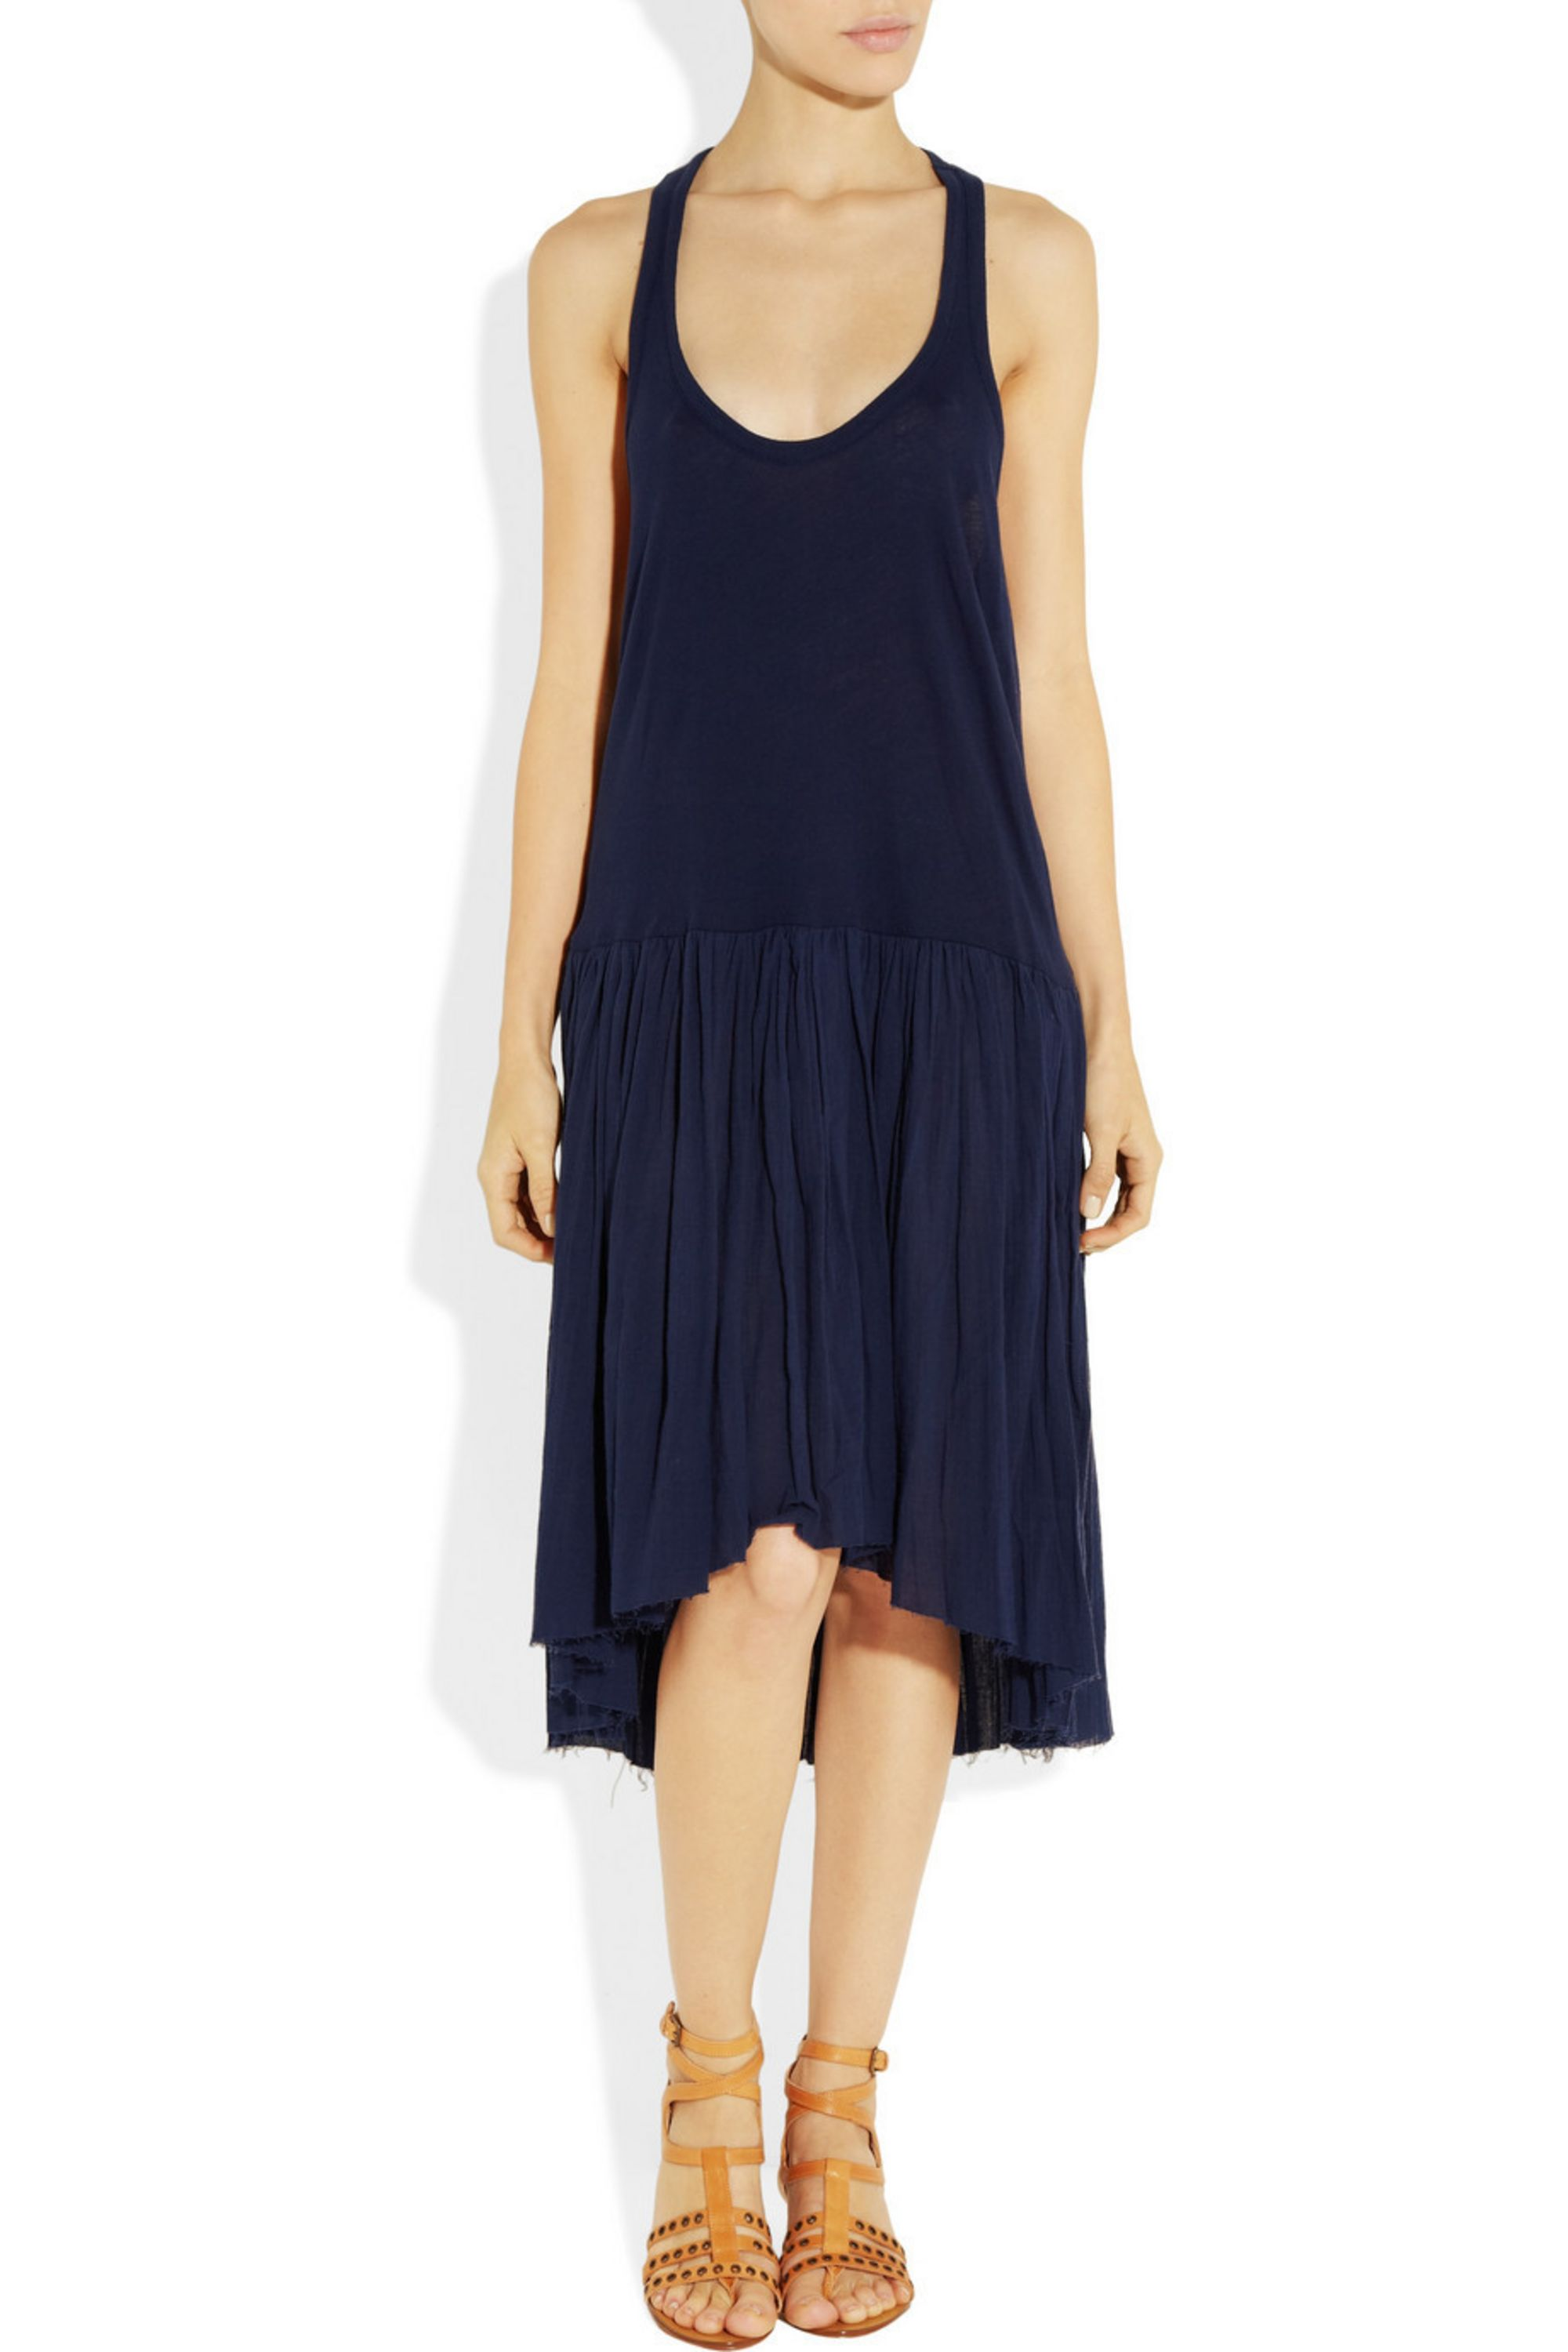 Raquel Allegra Pleated cotton-jersey and voile dress